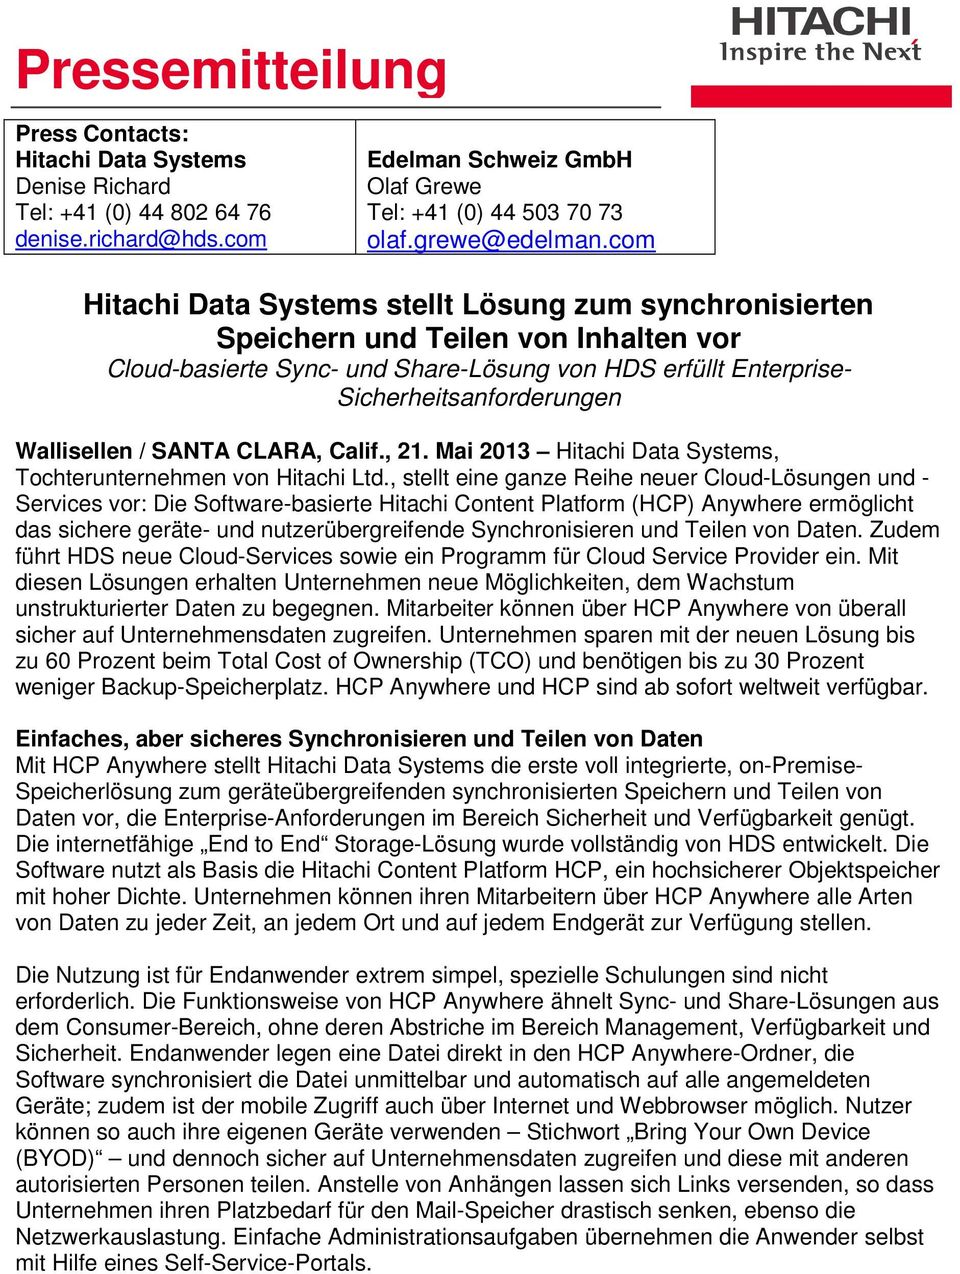 Wallisellen / SANTA CLARA, Calif., 21. Mai 2013 Hitachi Data Systems, Tochterunternehmen von Hitachi Ltd.